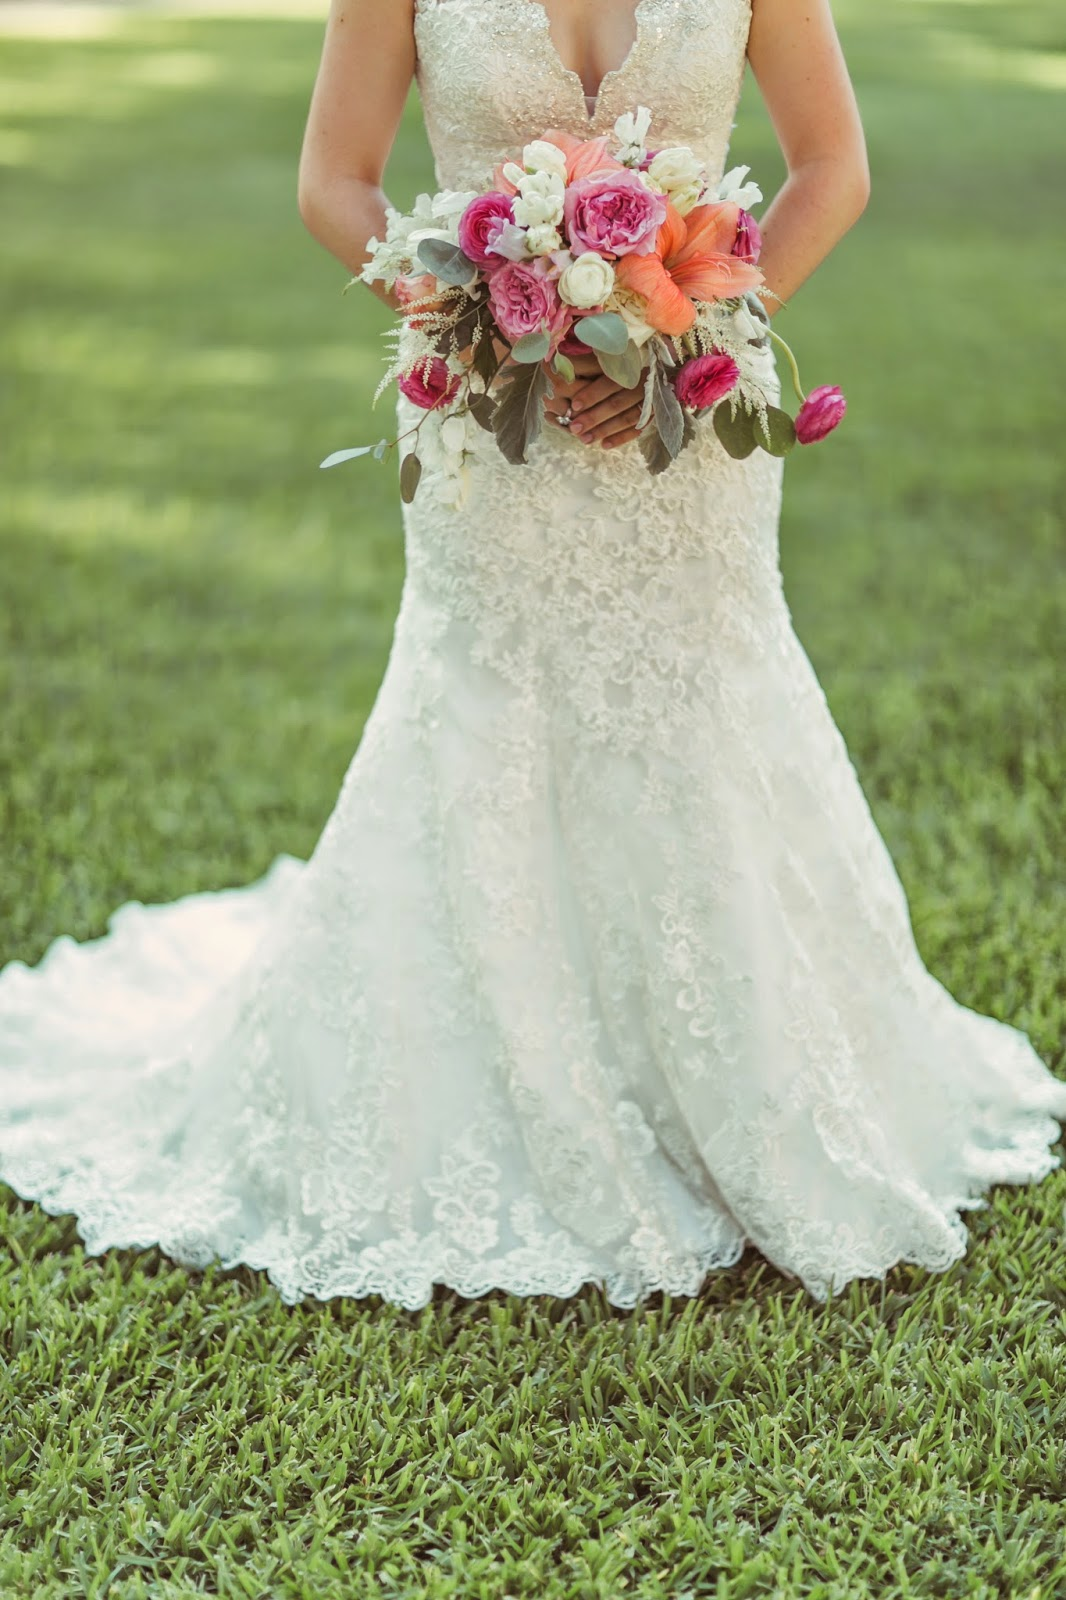 The Blooming Bride, DFW, Fort Worth, Texas, Wedding Flowers, Bouquet, Brides The Blooming Bride, DFW, Fort Worth, Texas, Wedding Flowers, Bouquet, Bride, Wedding Dress, Outdoor Wedding